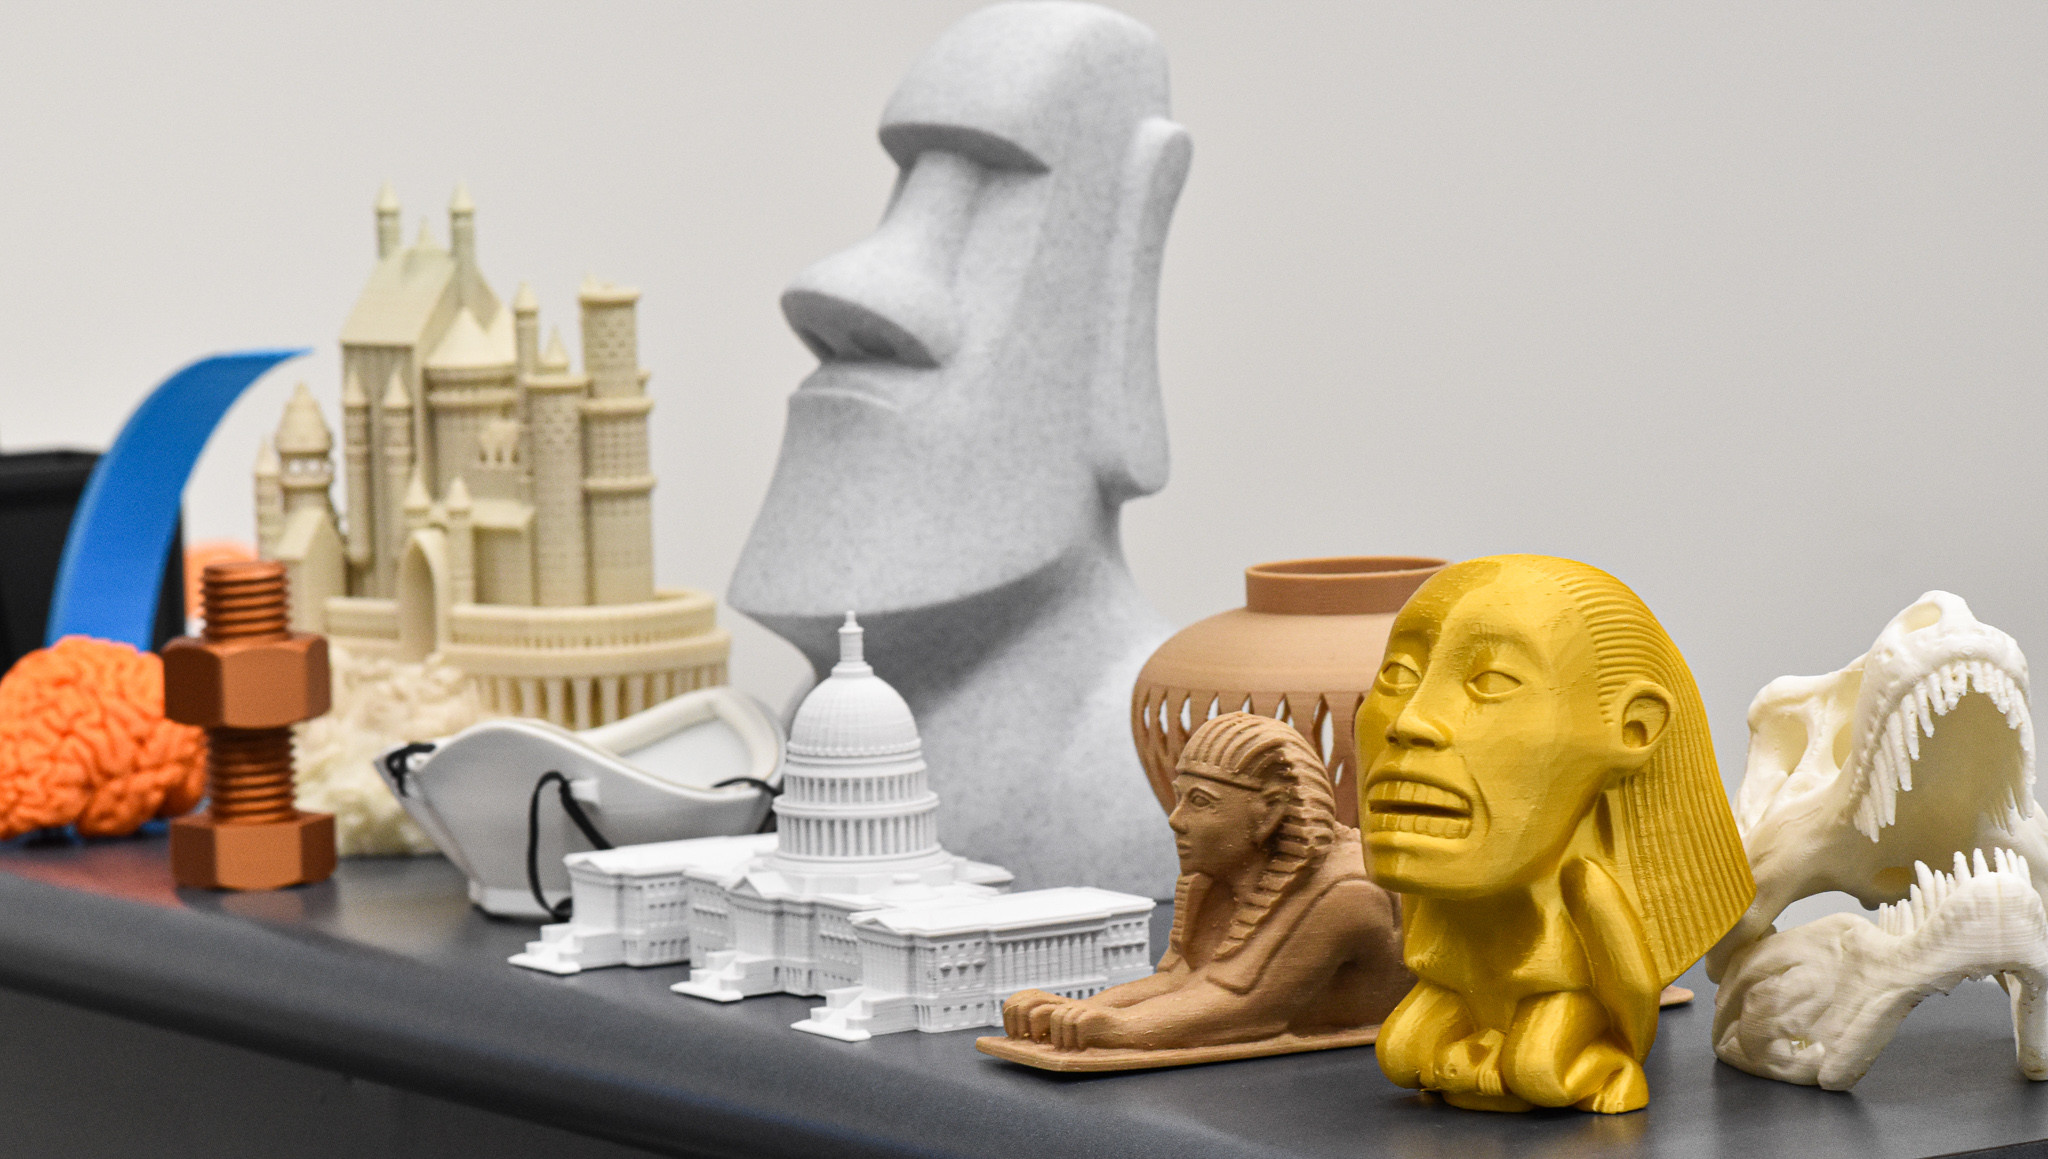 3D printed object examples.